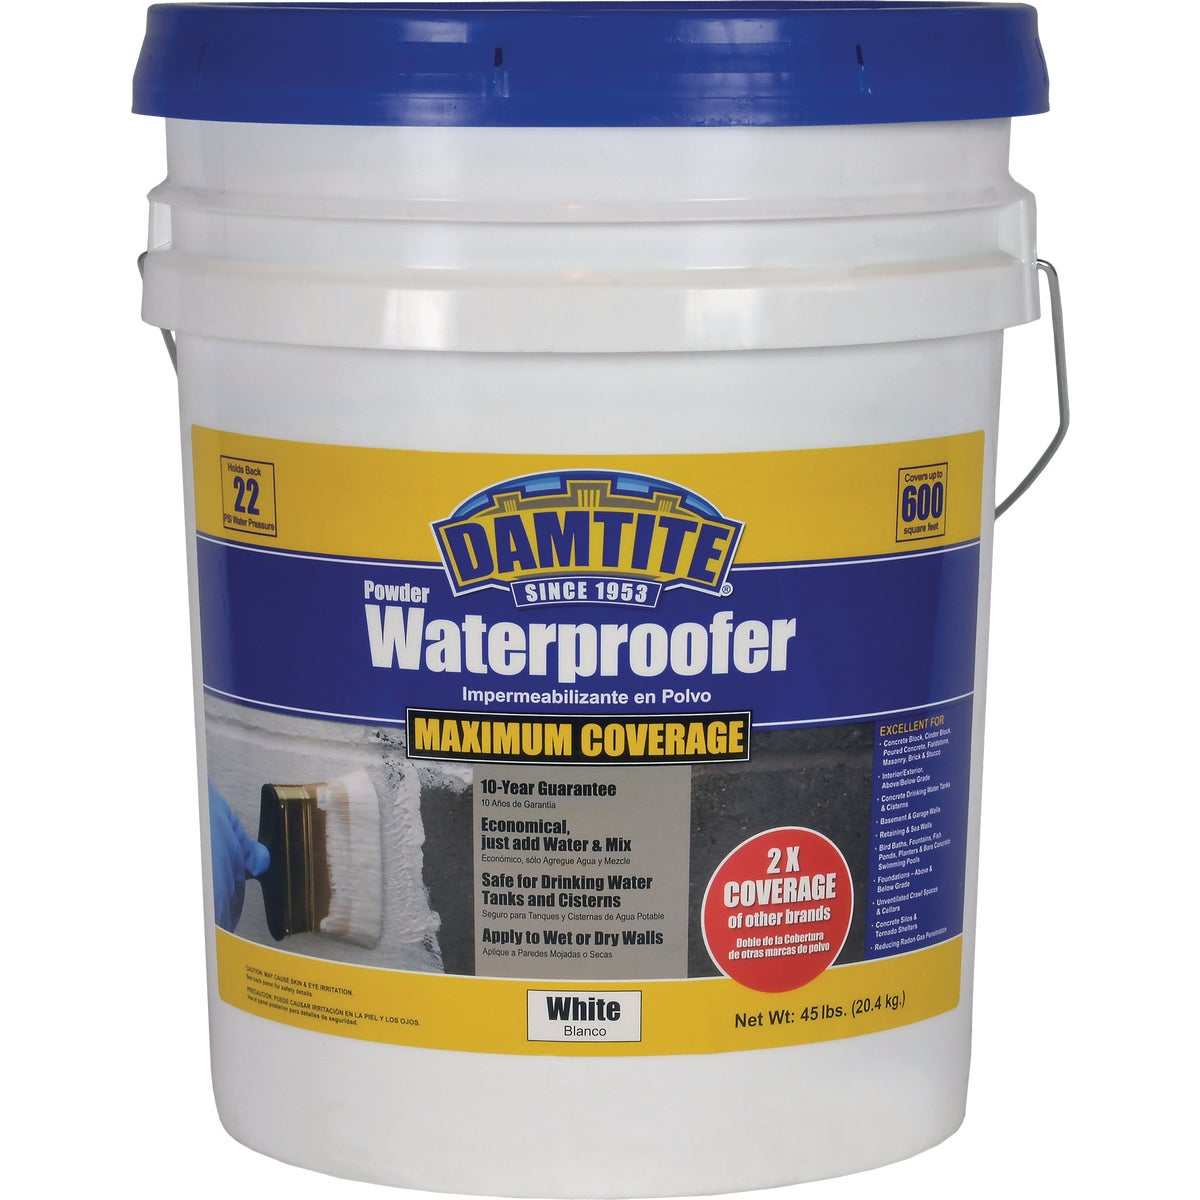 45LB CONCRT WATERPROOFER - 01451 by Damtite Waterproofng